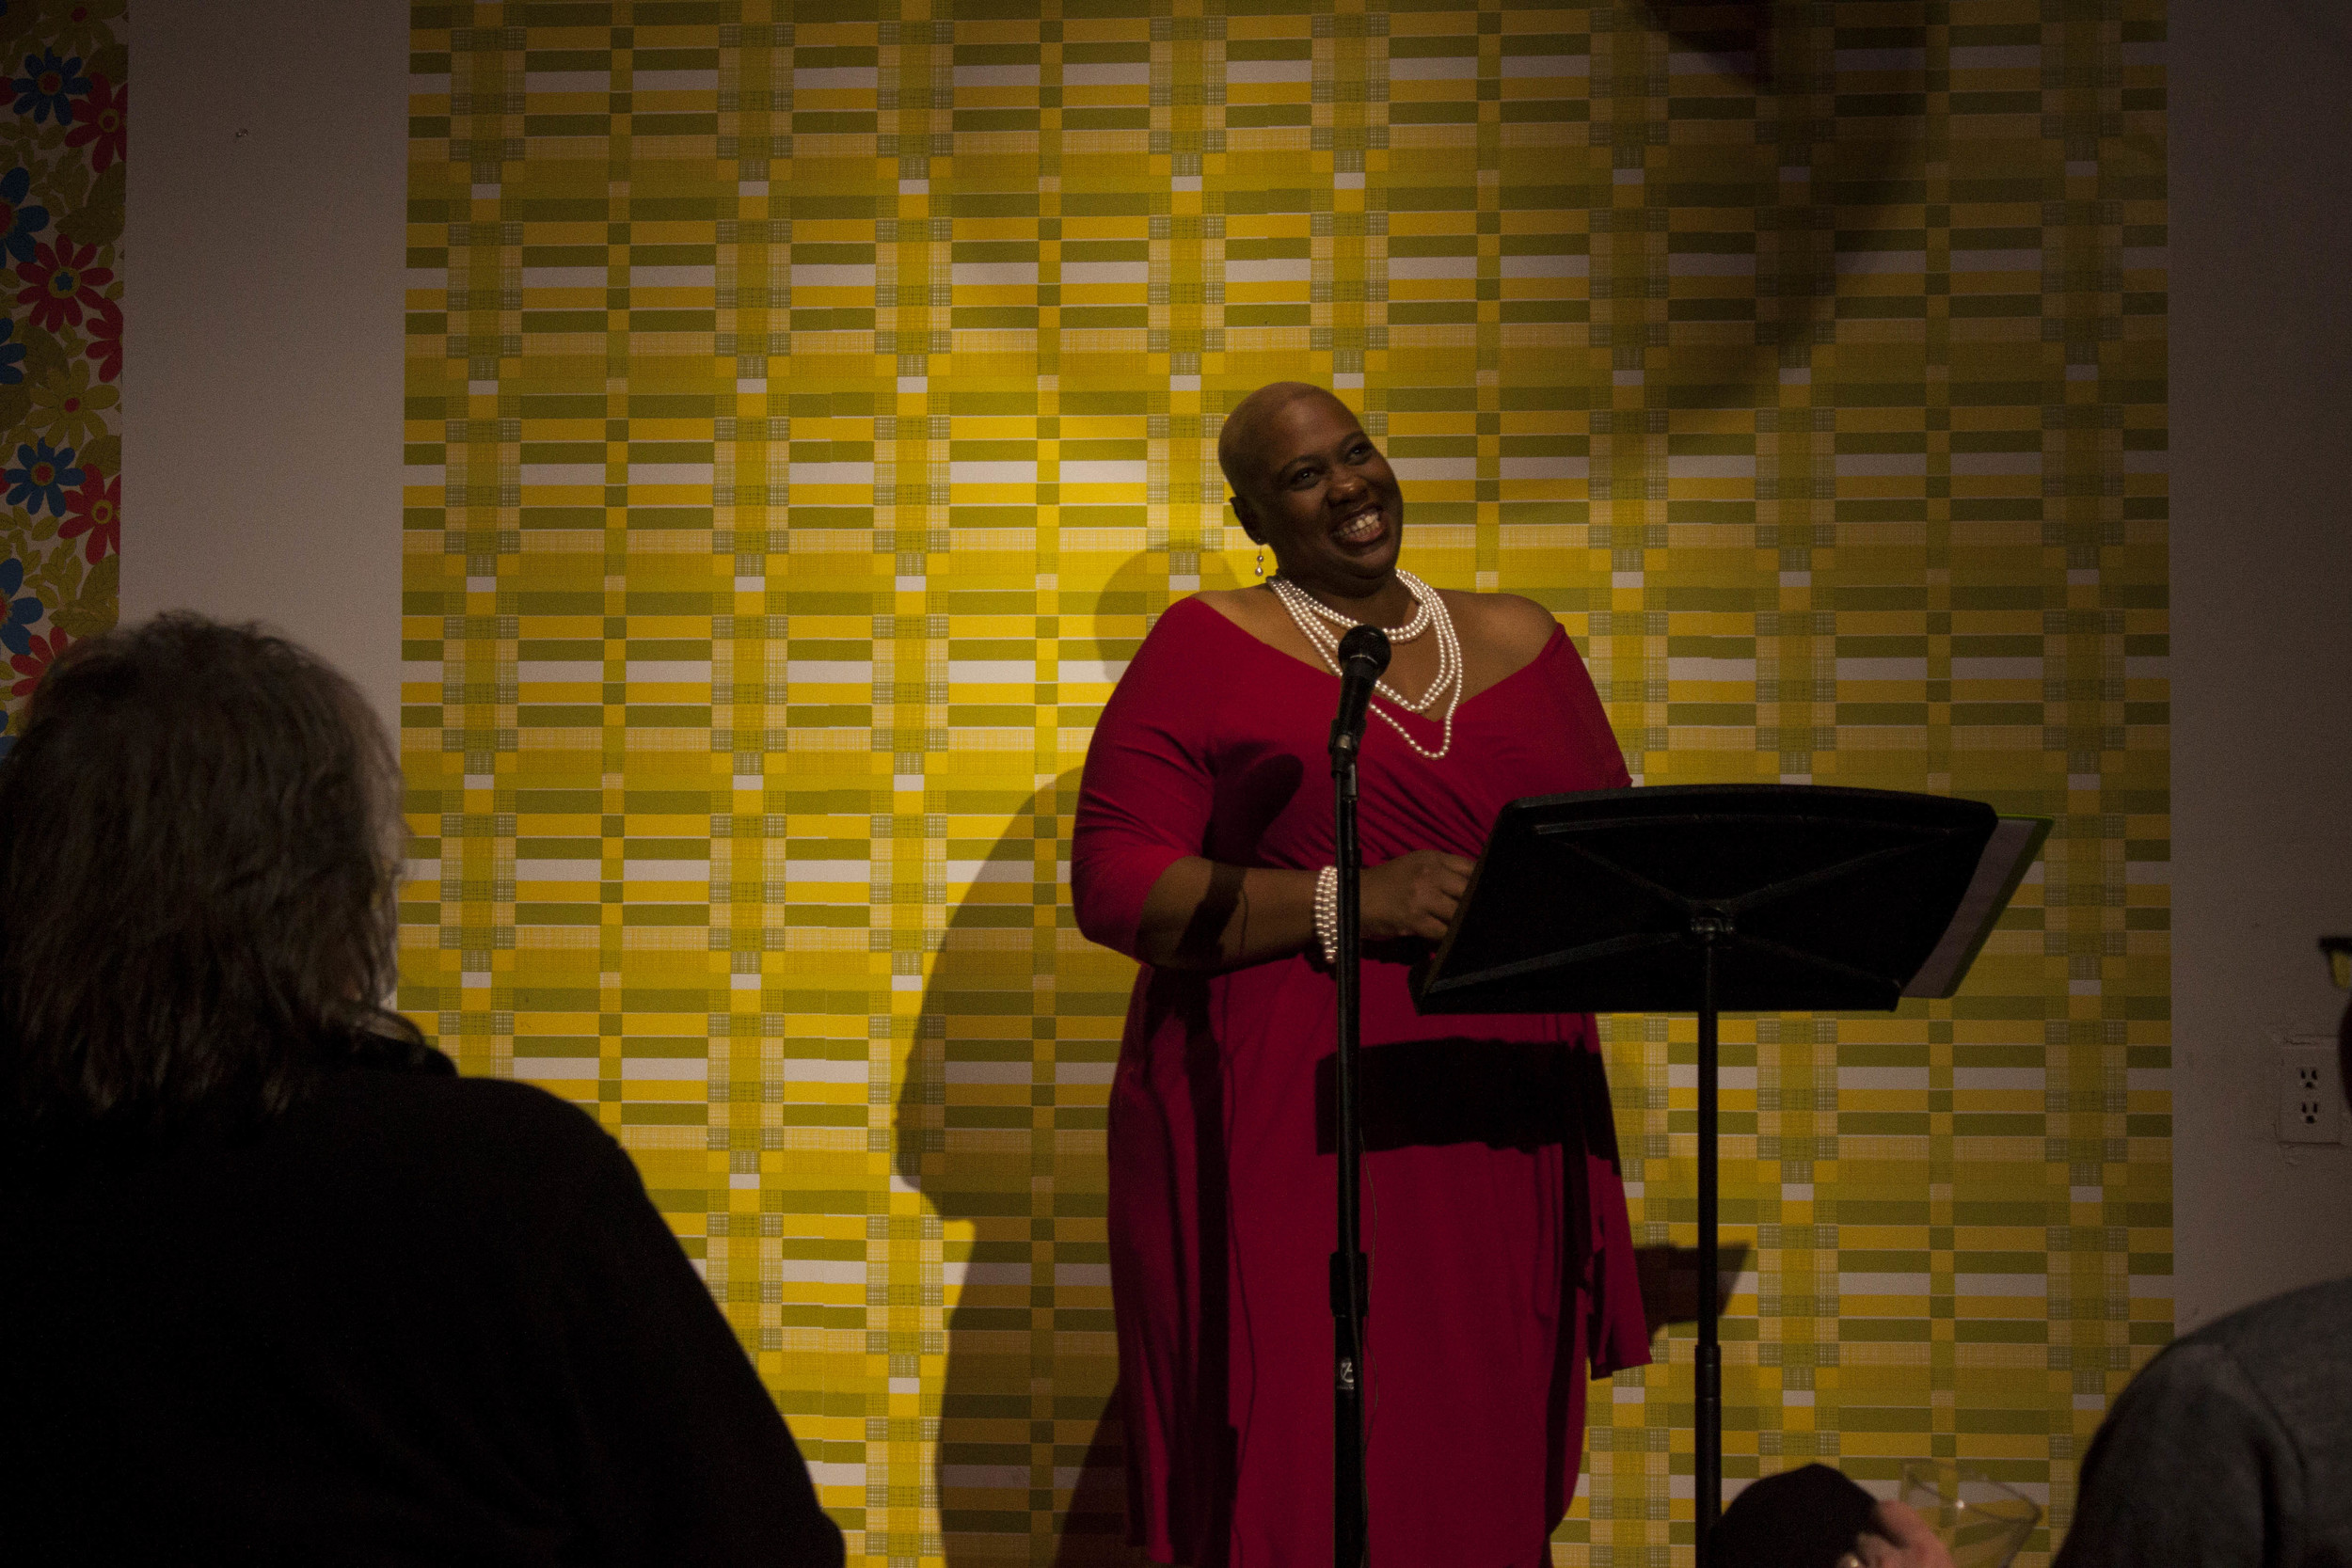 Memphis Monologues highlights the many facets of being a woman. Adriane Williams shares a laugh during her monologue.